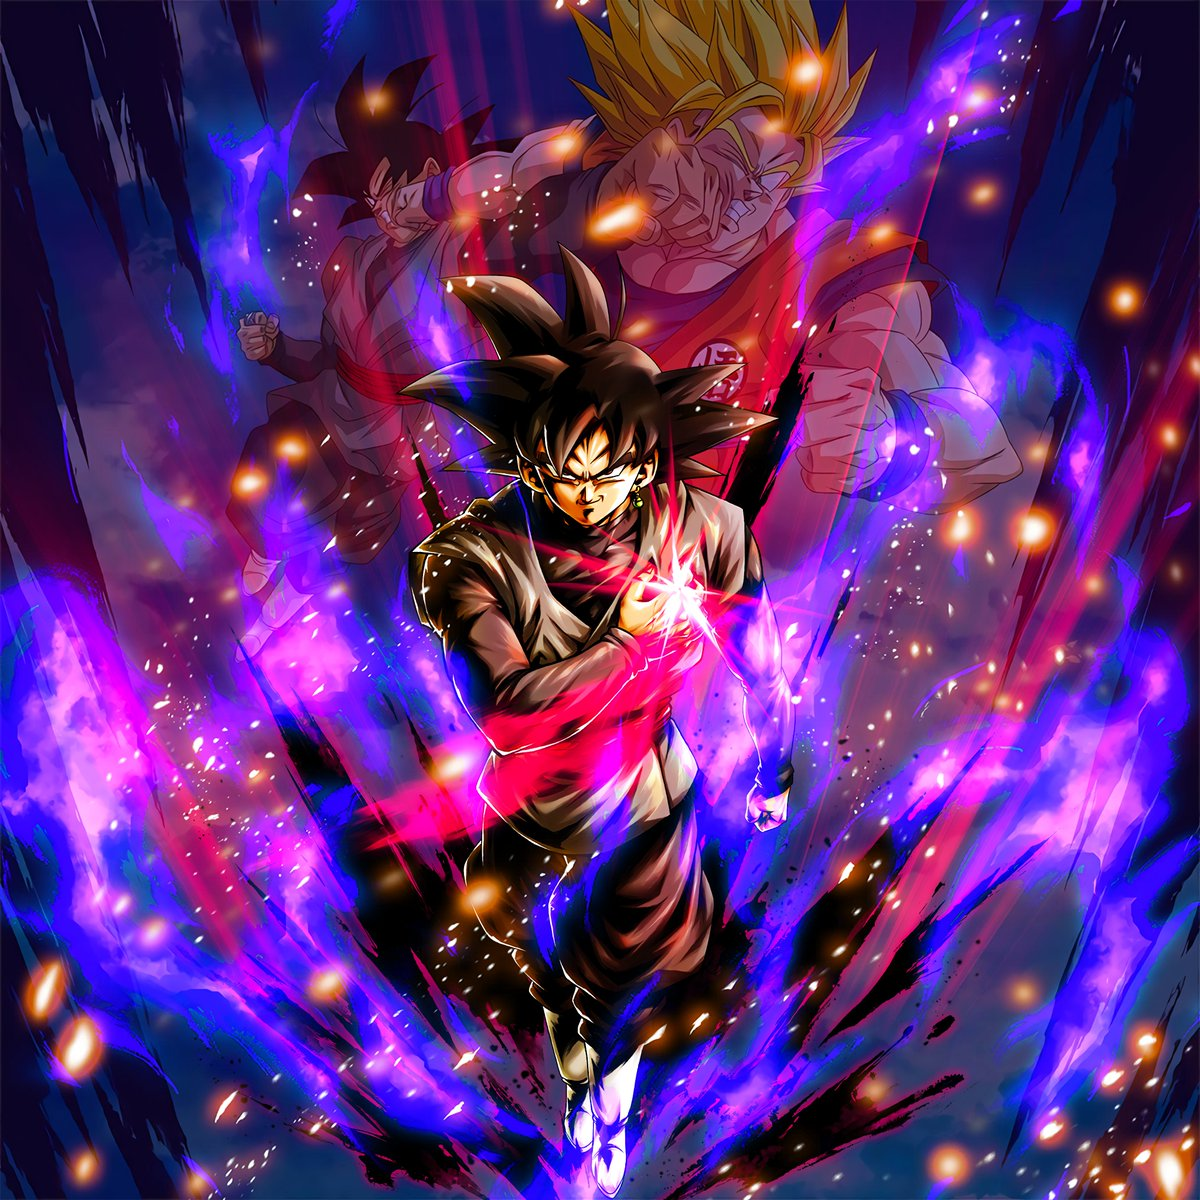 Hydros On Twitter Grn Goku Black Pre Transformation Character Art 4k Pc Wallpaper 4k Phone Wallpaper Dblegends Dragonballlegends Https T Co H2ymfgfc1j